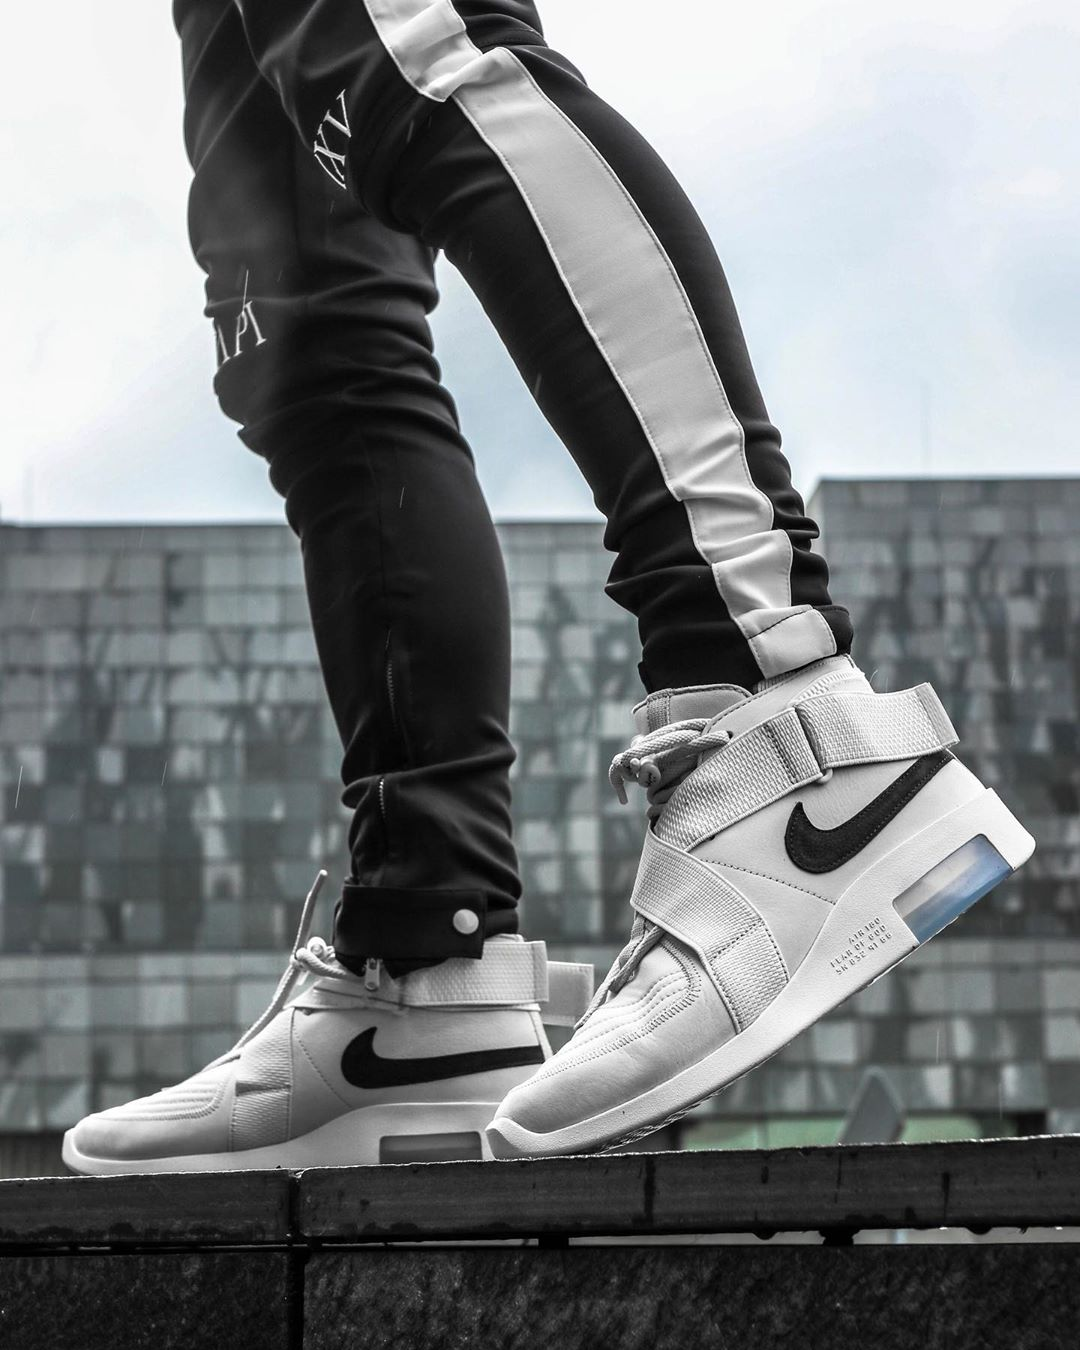 Nike Air Mag (With images) | Skate wear, Urban outfits ... |Nike Mag Outfit